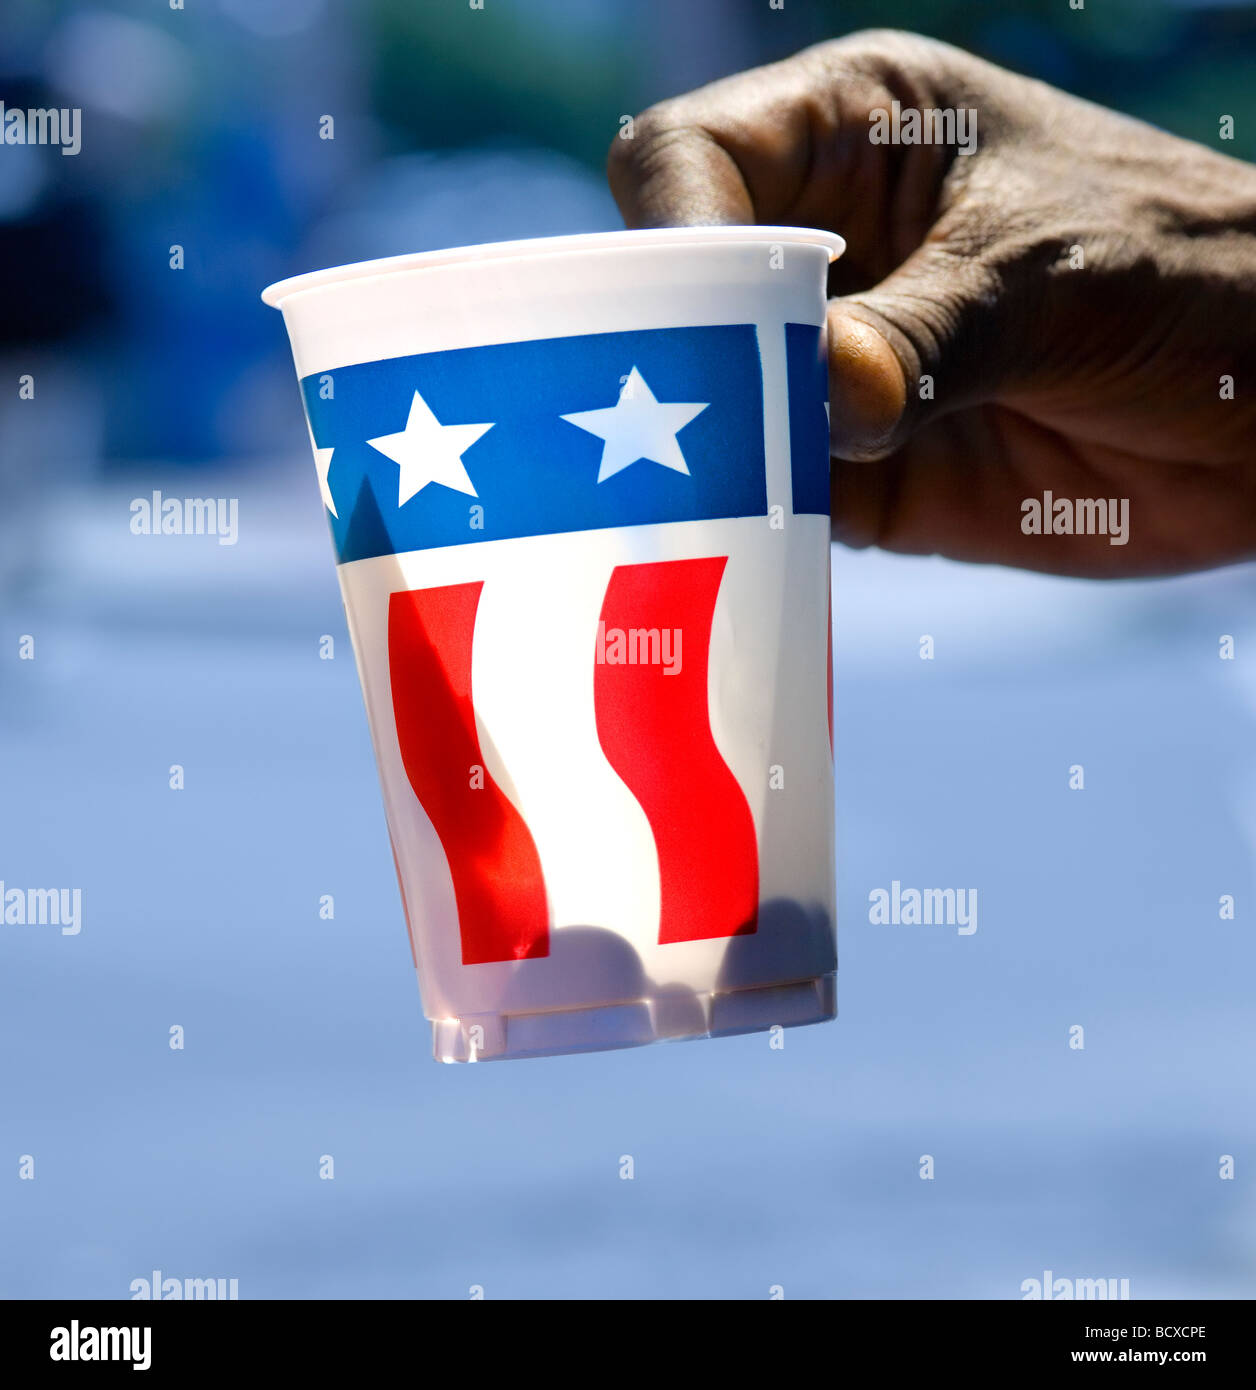 https://c7.alamy.com/comp/BCXCPE/hand-of-homeless-person-holding-out-paper-cup-with-us-flag-begging-BCXCPE.jpg